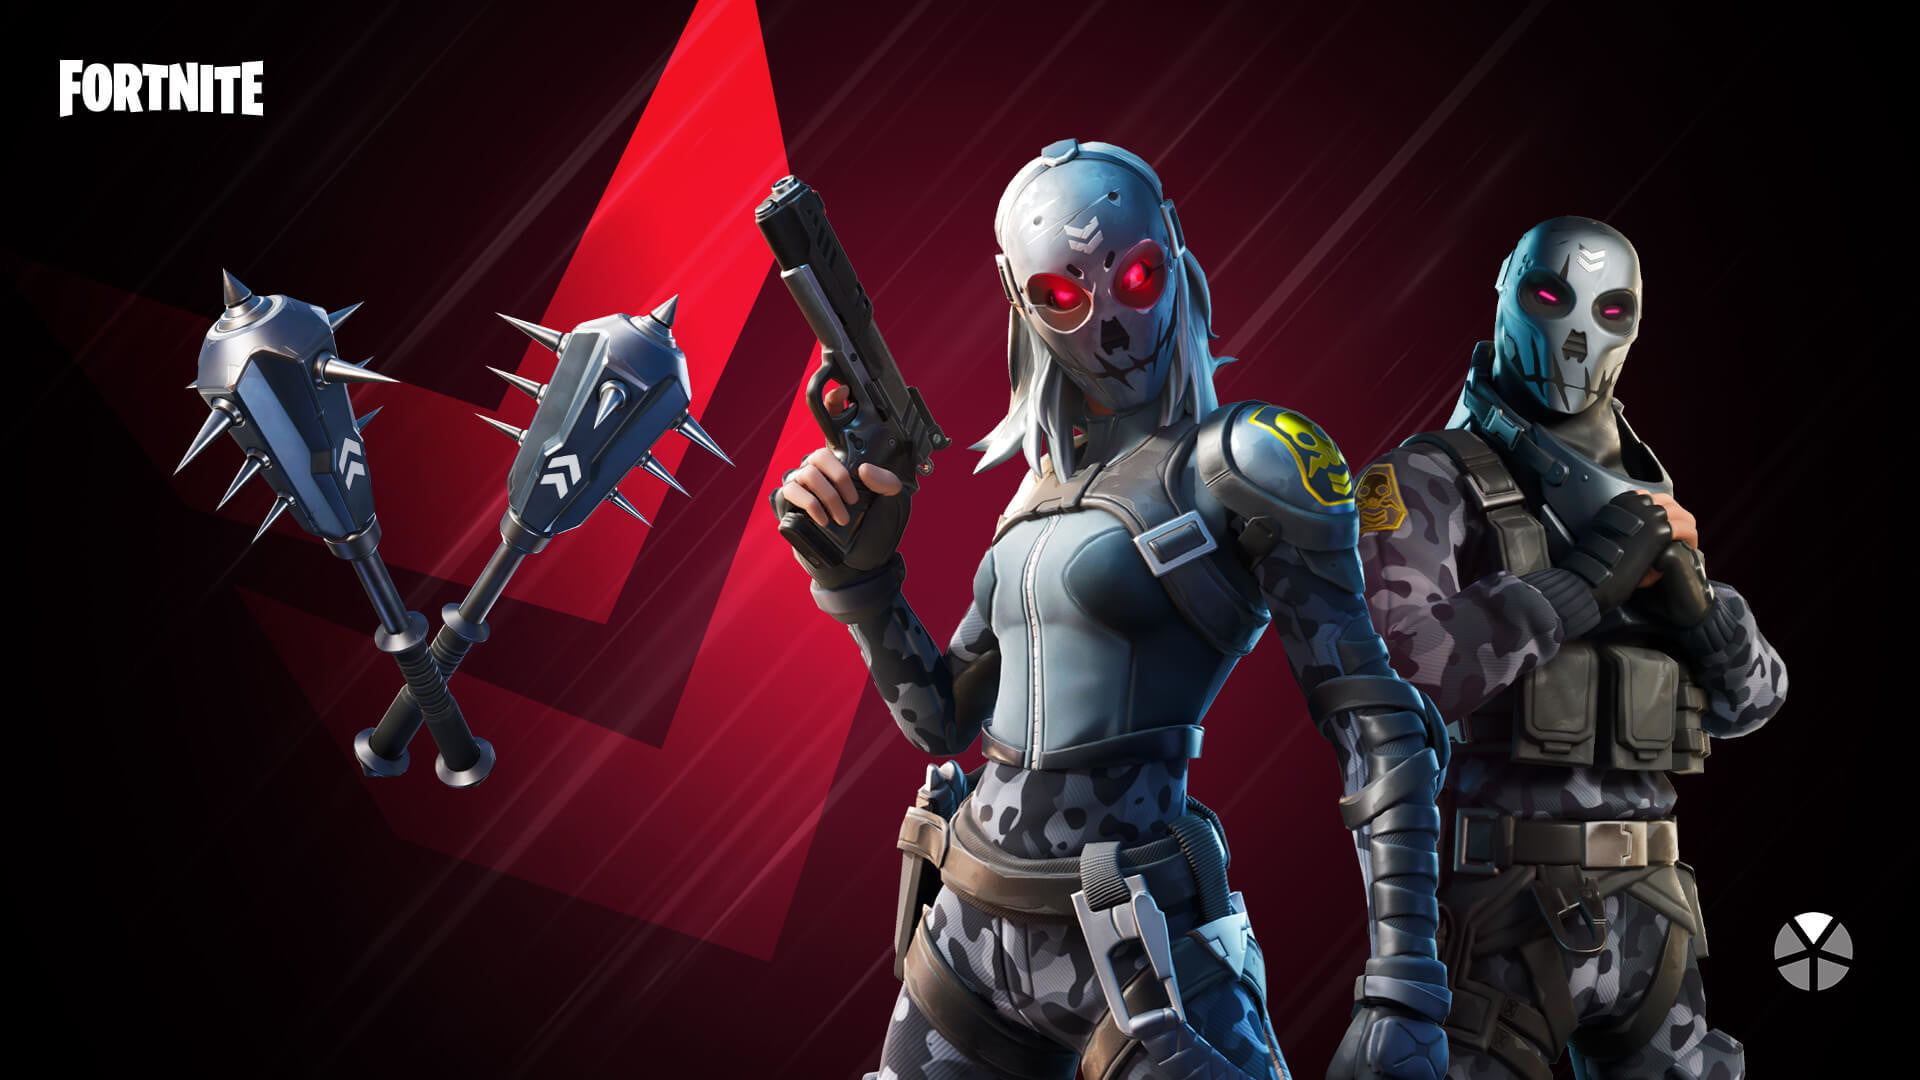 Fortnite Search and Destroy